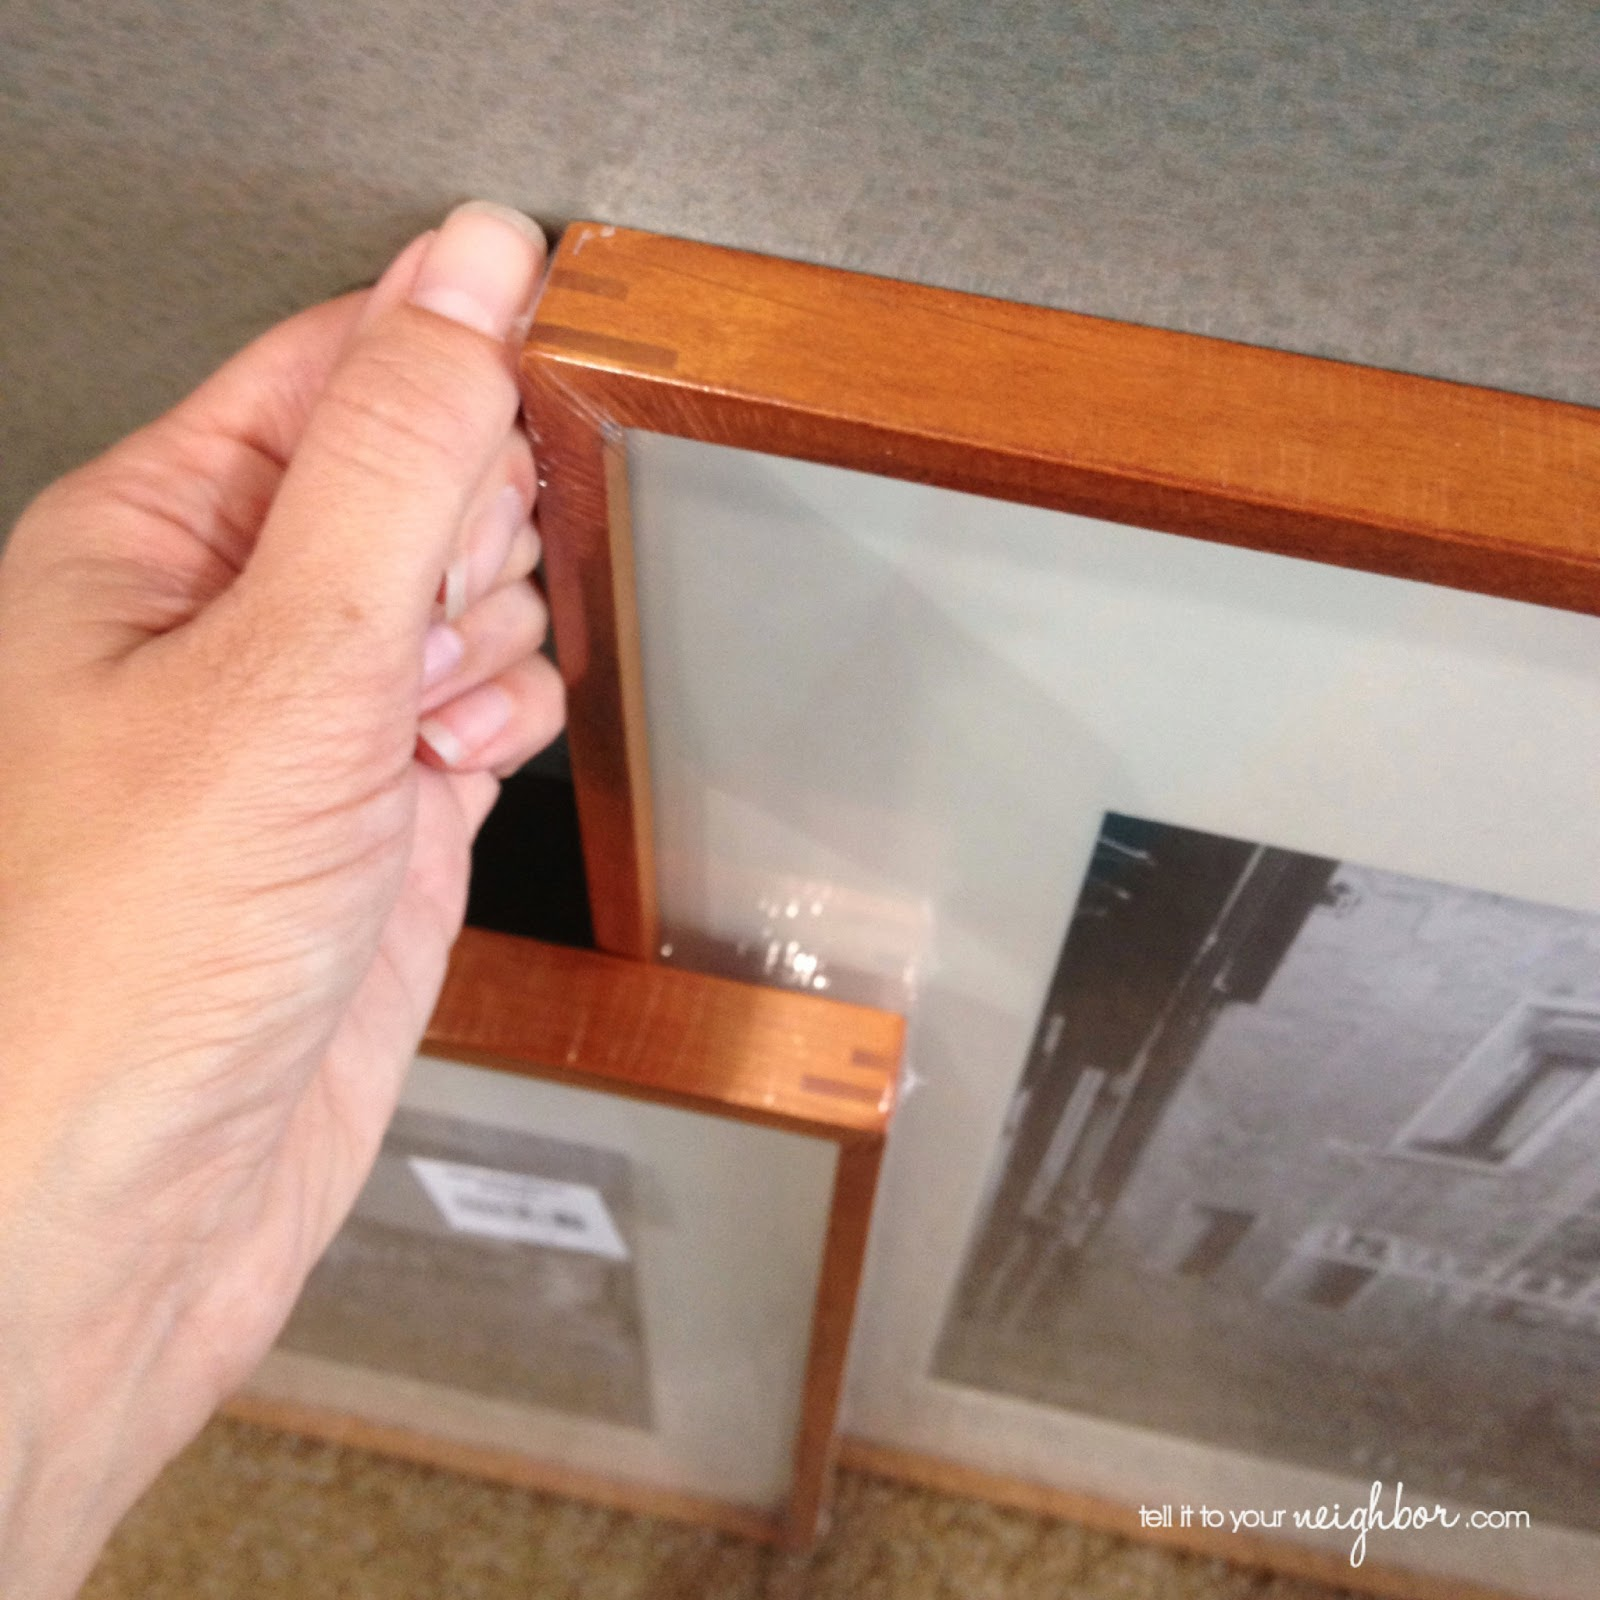 tell it to your neighbor!: A Nice Frame Ready-To-Go